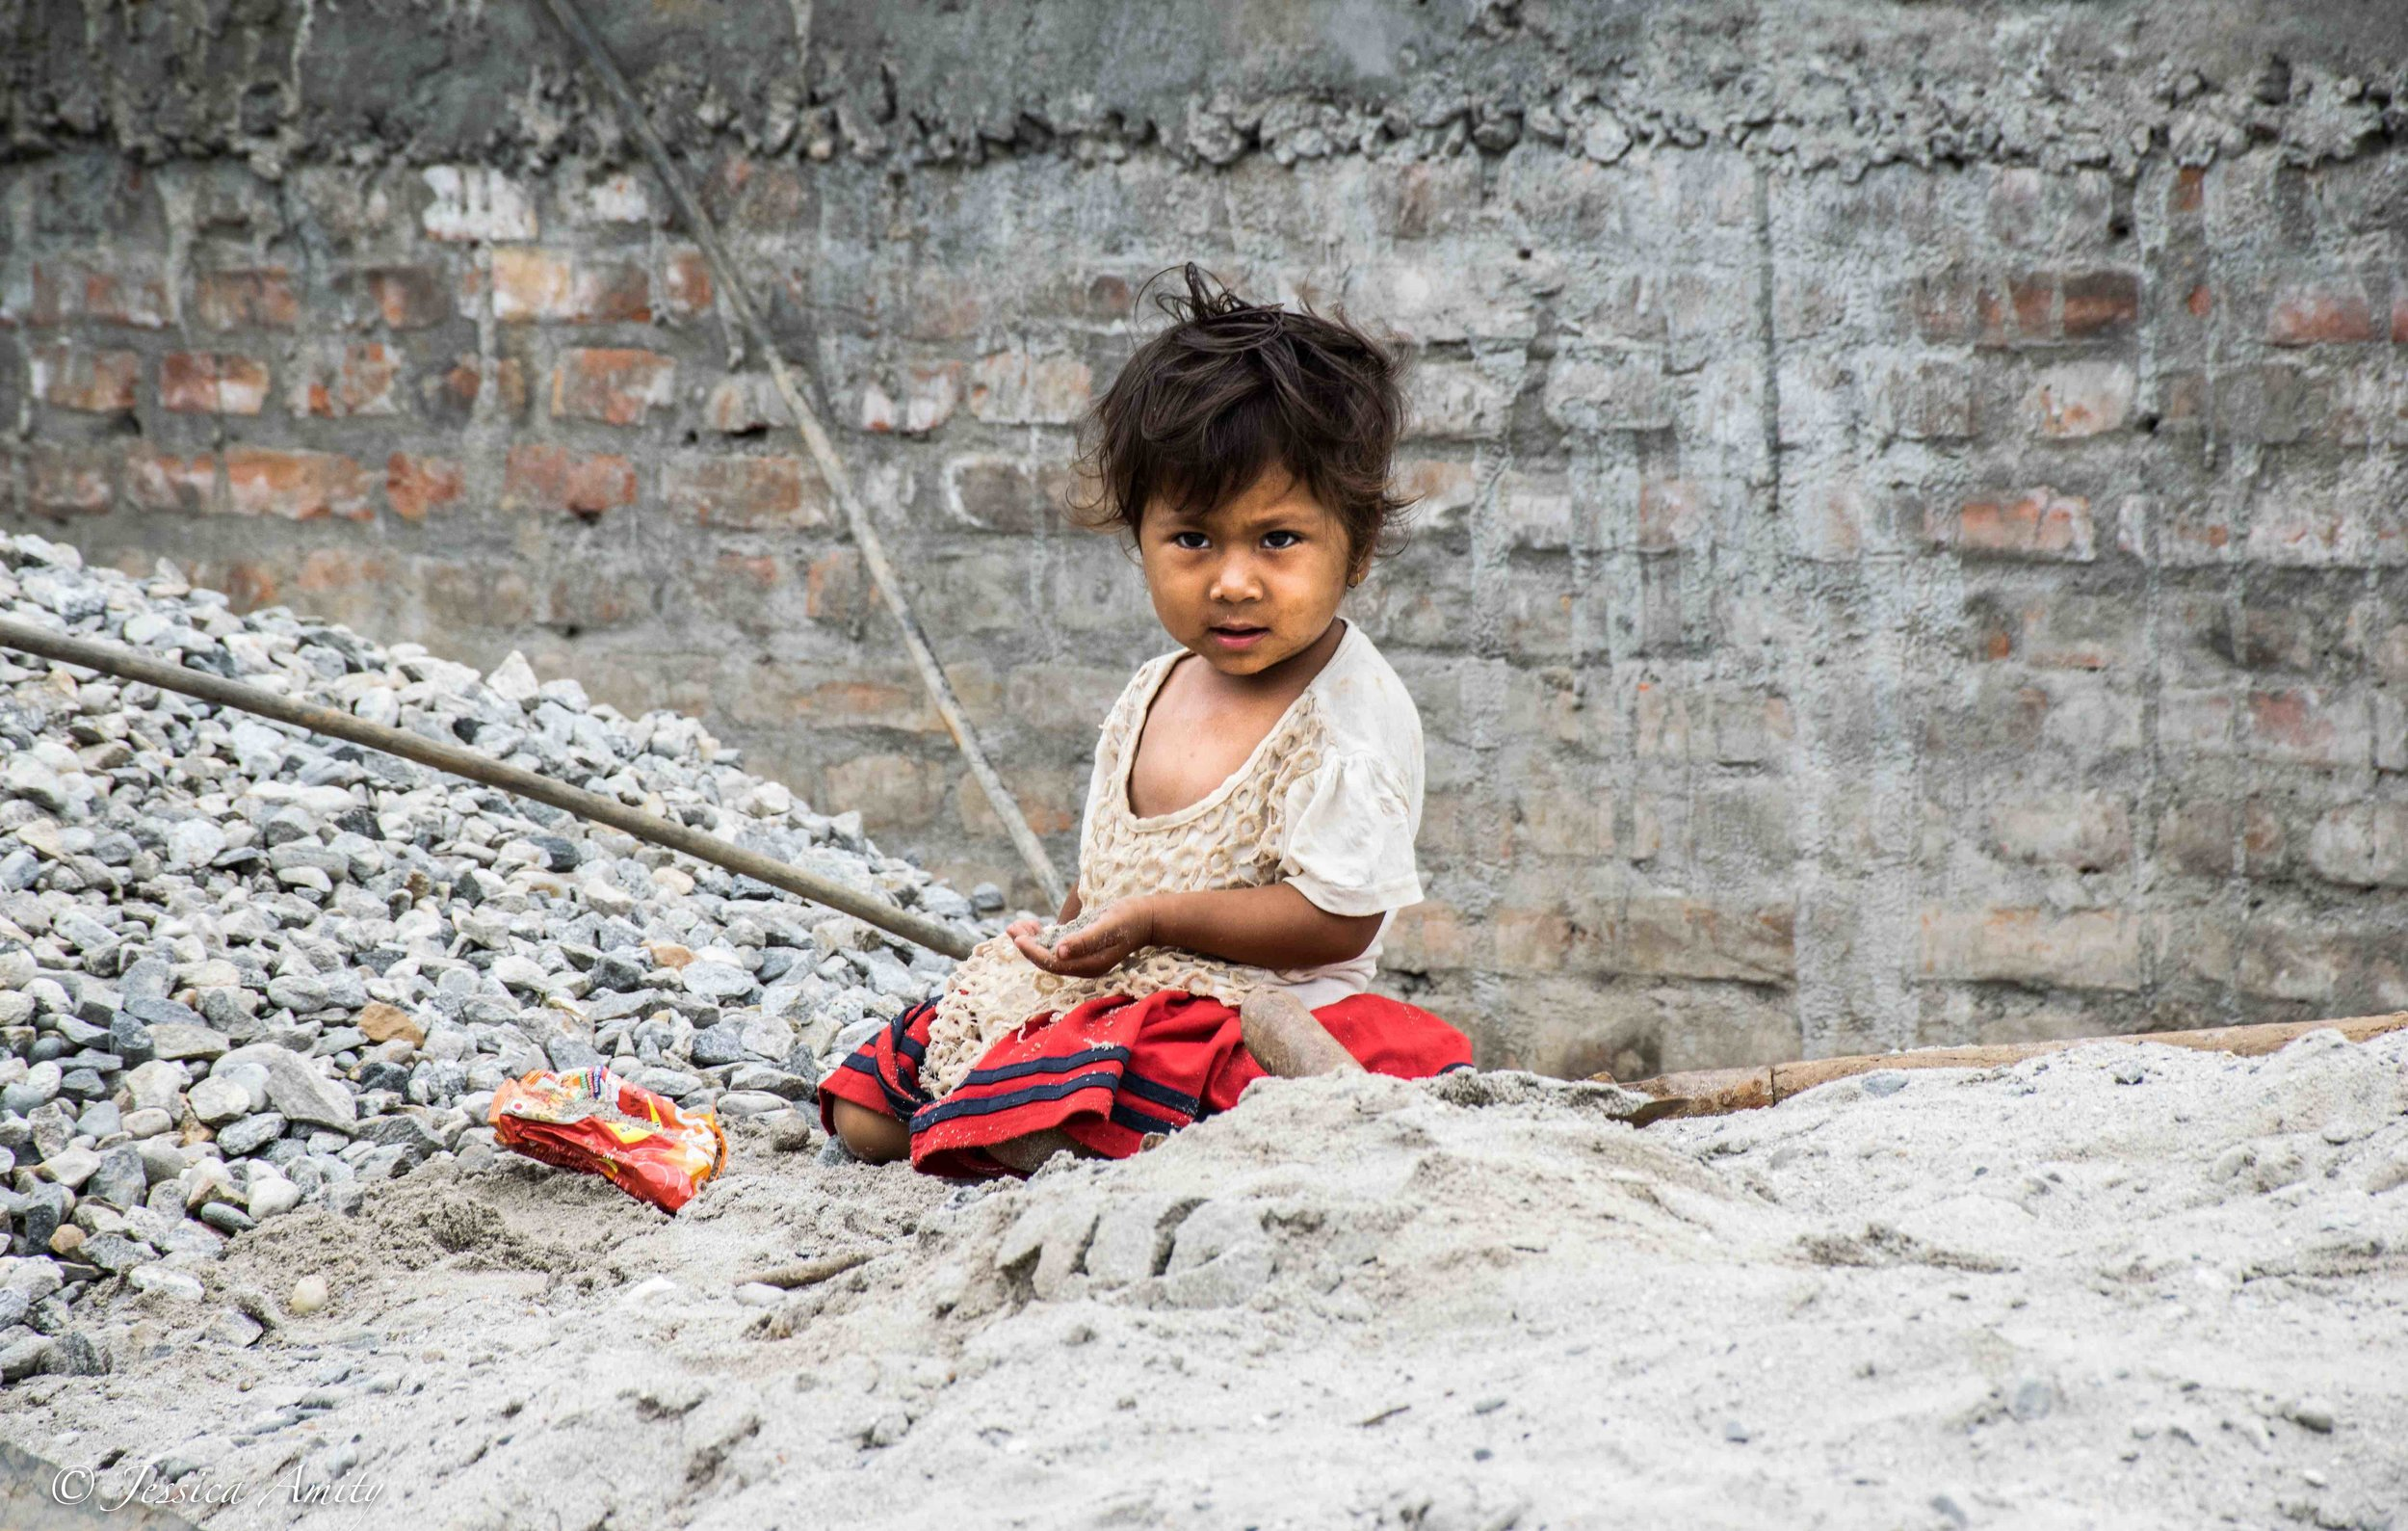 A little girl plays in the rubble during the construction of a new home in Sindupolchok, Nepal. In Nepal, 25.2% of the population live below the national poverty line.